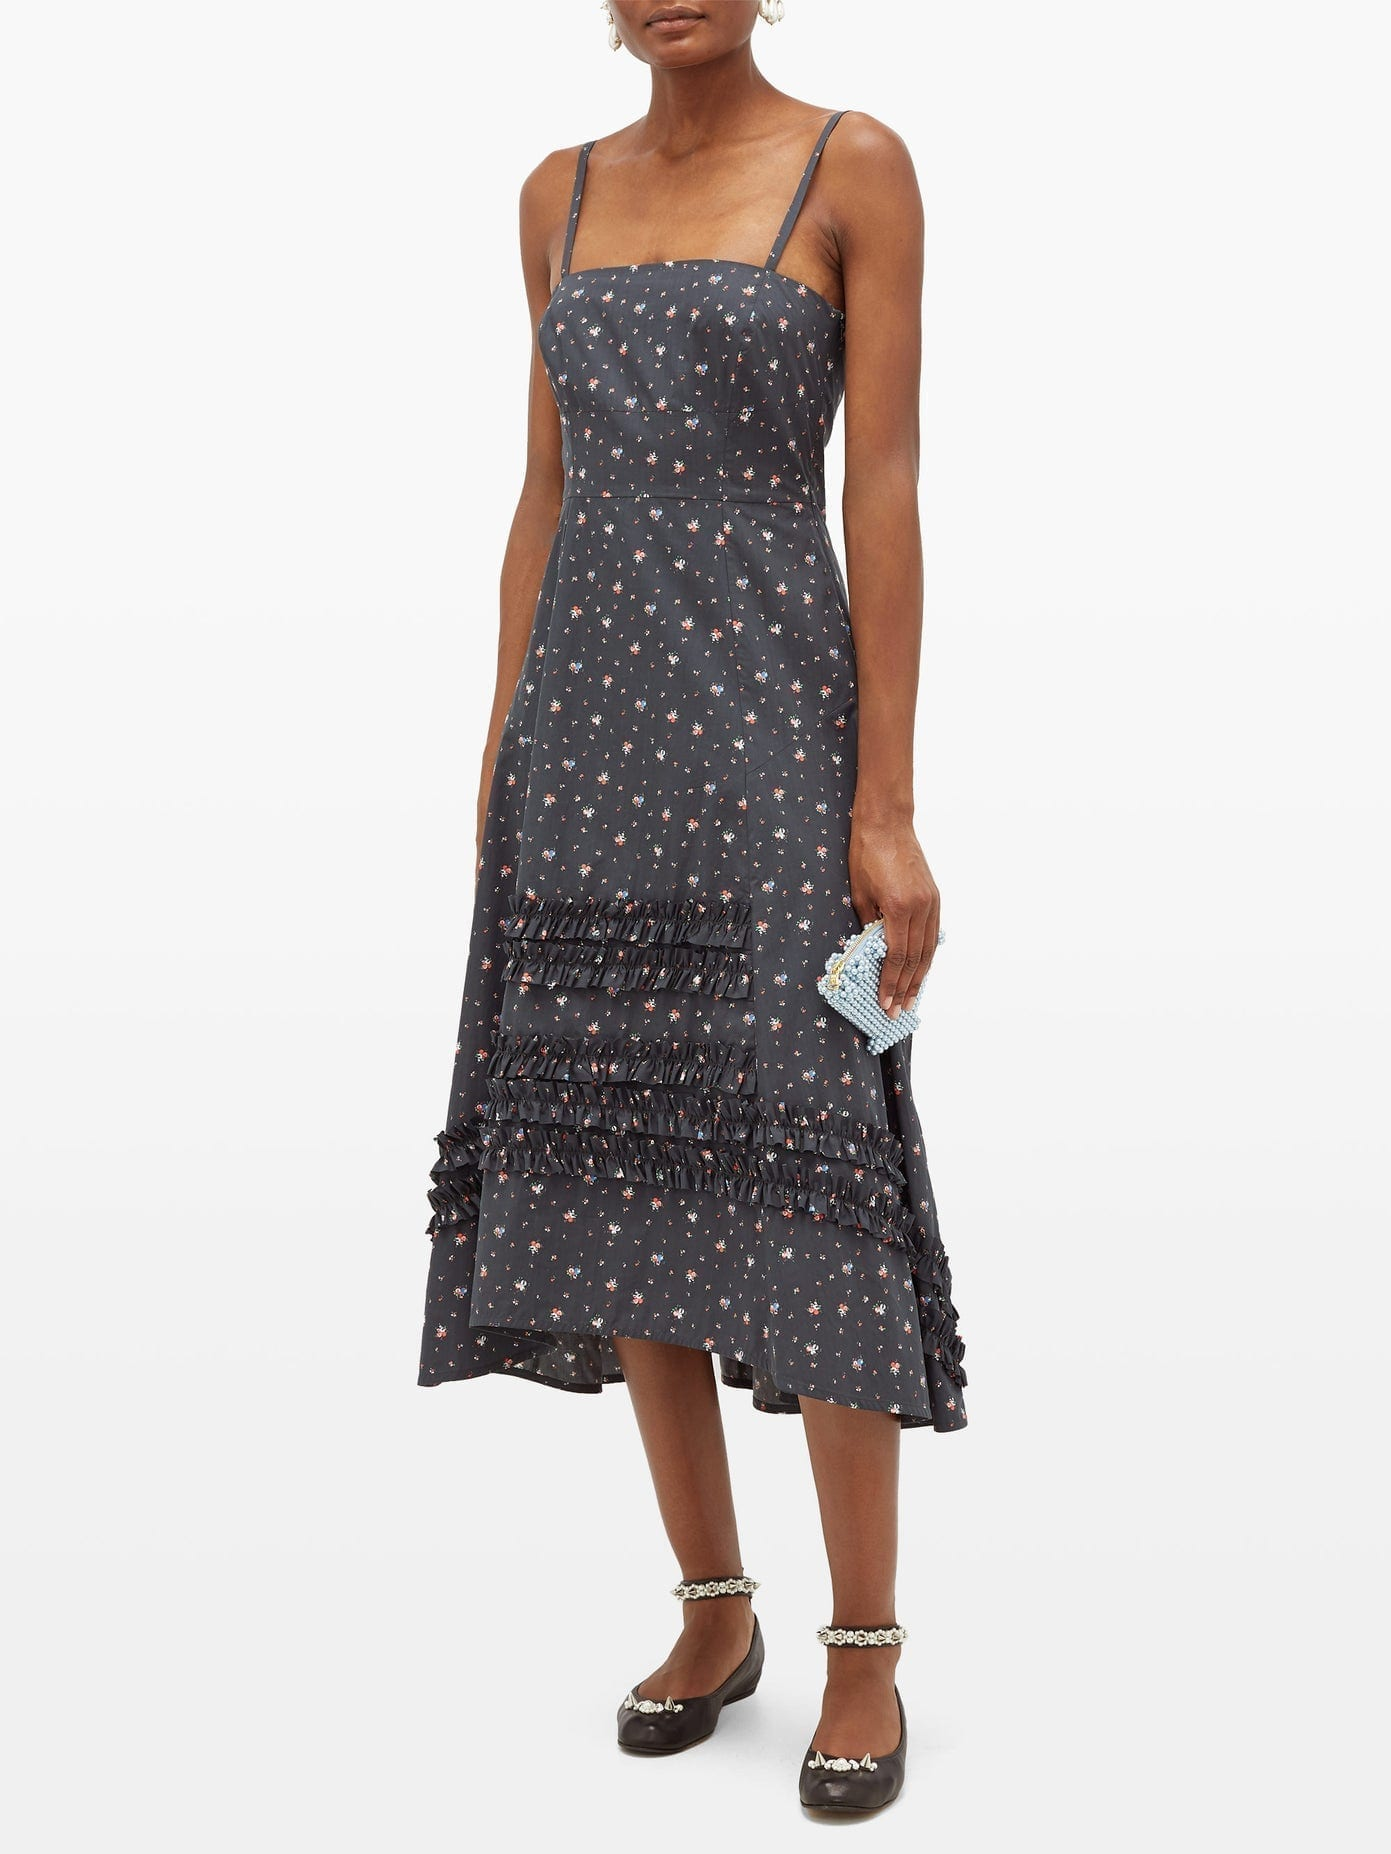 MOLLY GODDARD Demi Ruffled Floral-Print Cotton Dress